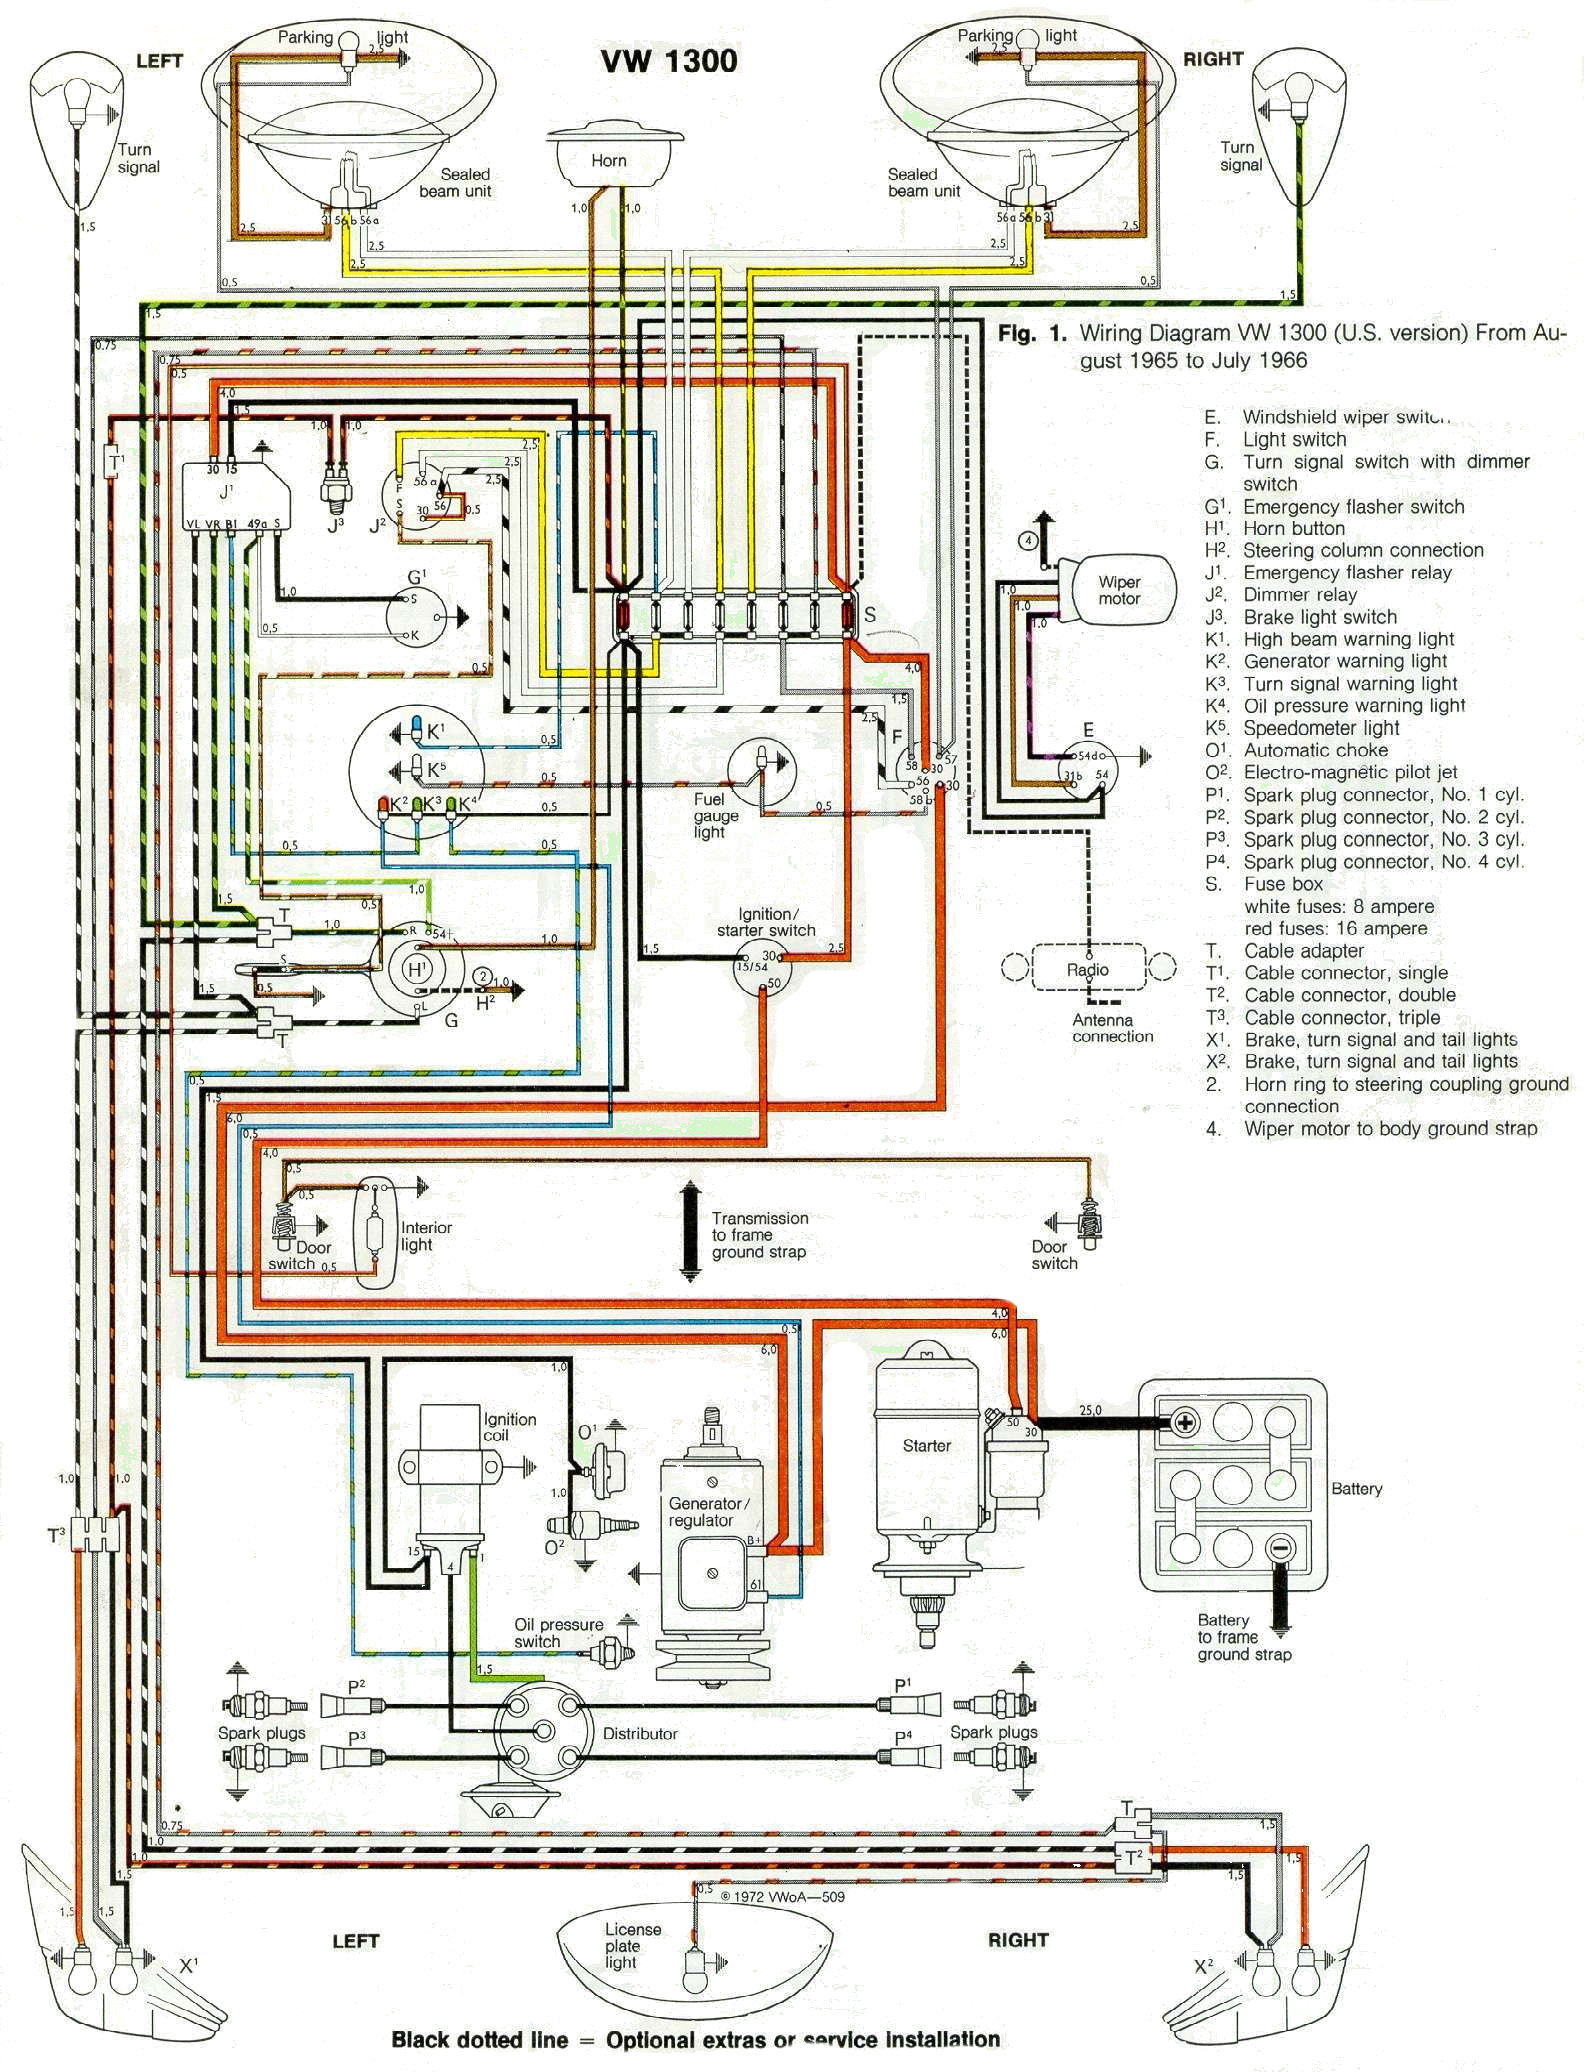 Wiper Motor Wiring Diagram For 1964 Vw Bug Opinions About 6v 1966 Beetle Detailed Schematics Rh Lelandlutheran Com 1972 73